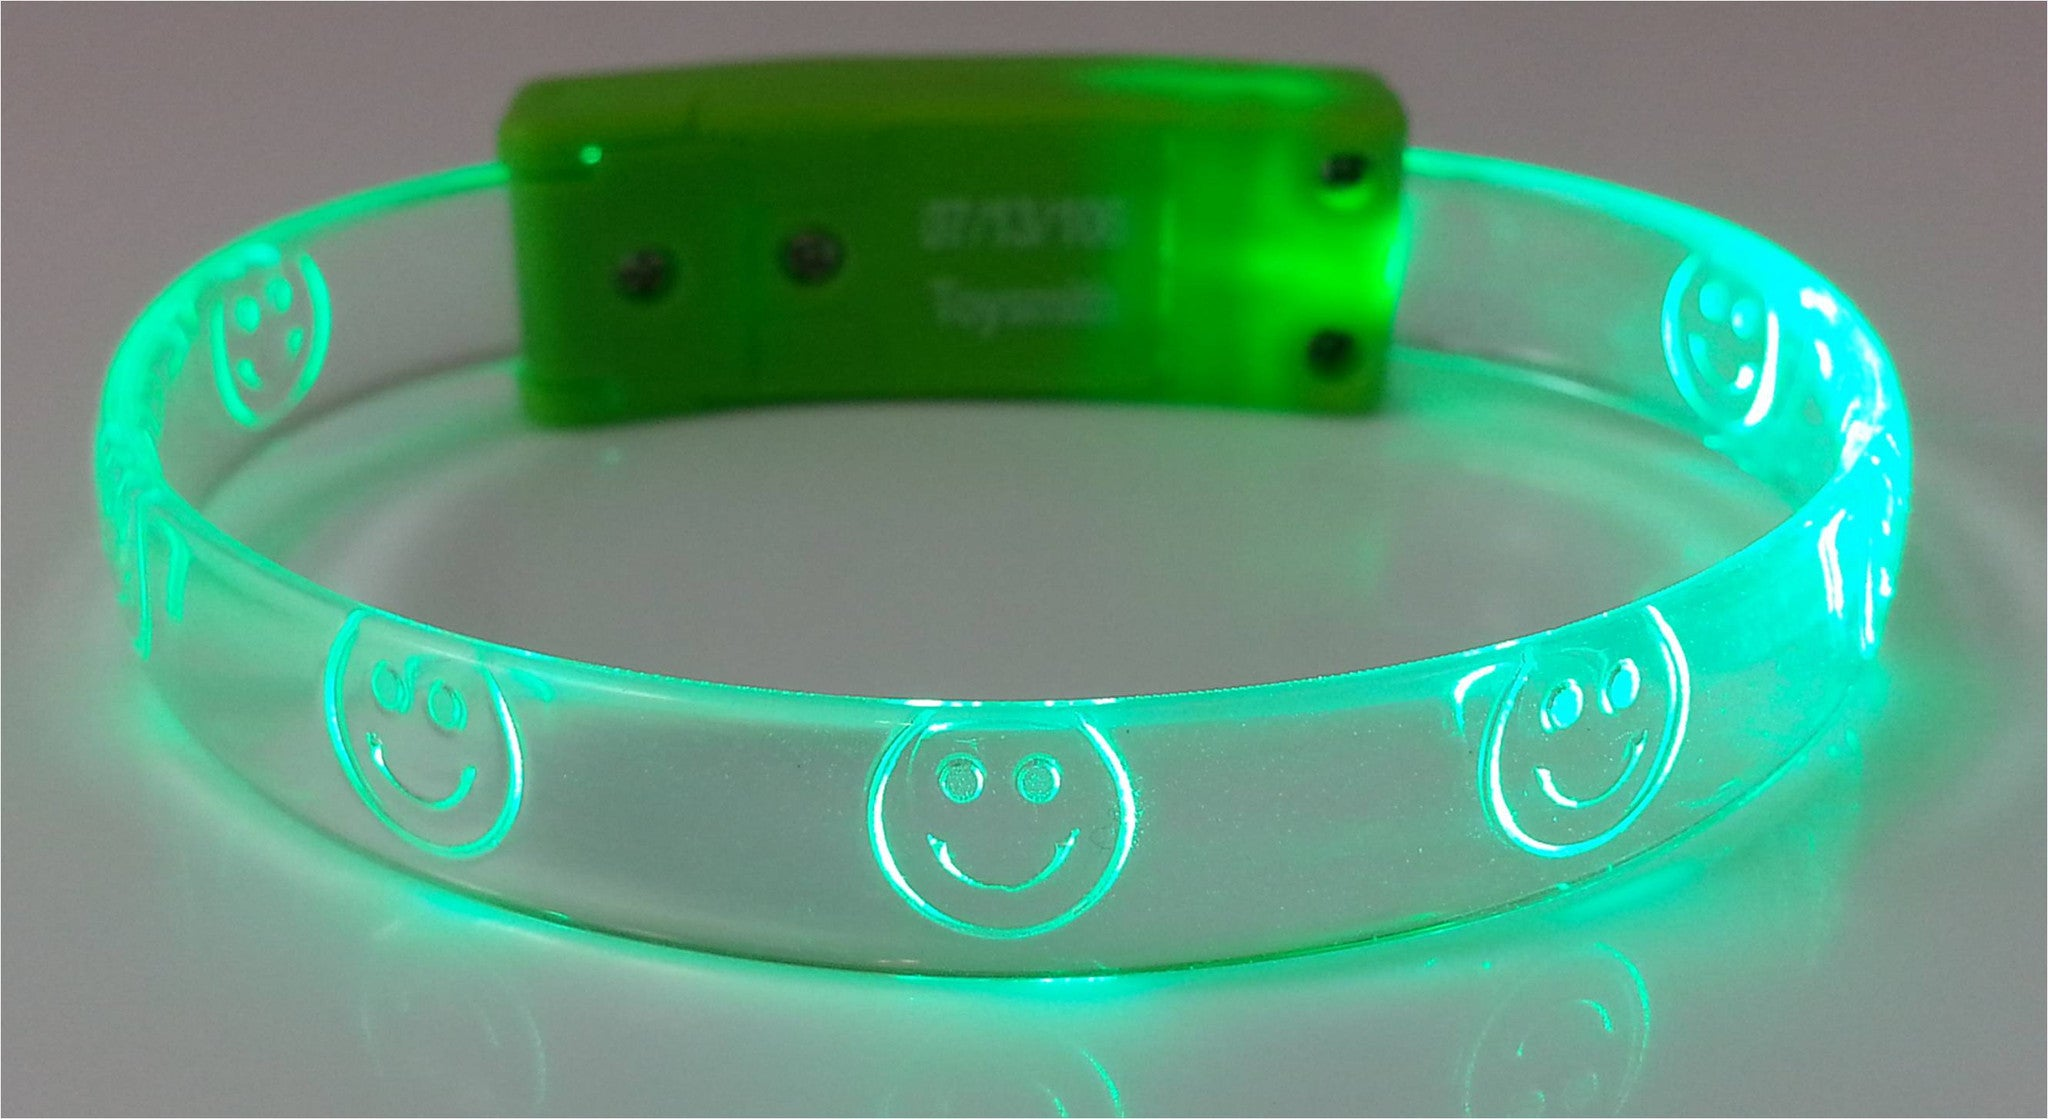 FlashBanz Designz Light Up Bracelet - Green with Smiley Faces - Off The Wall Toys and Gifts